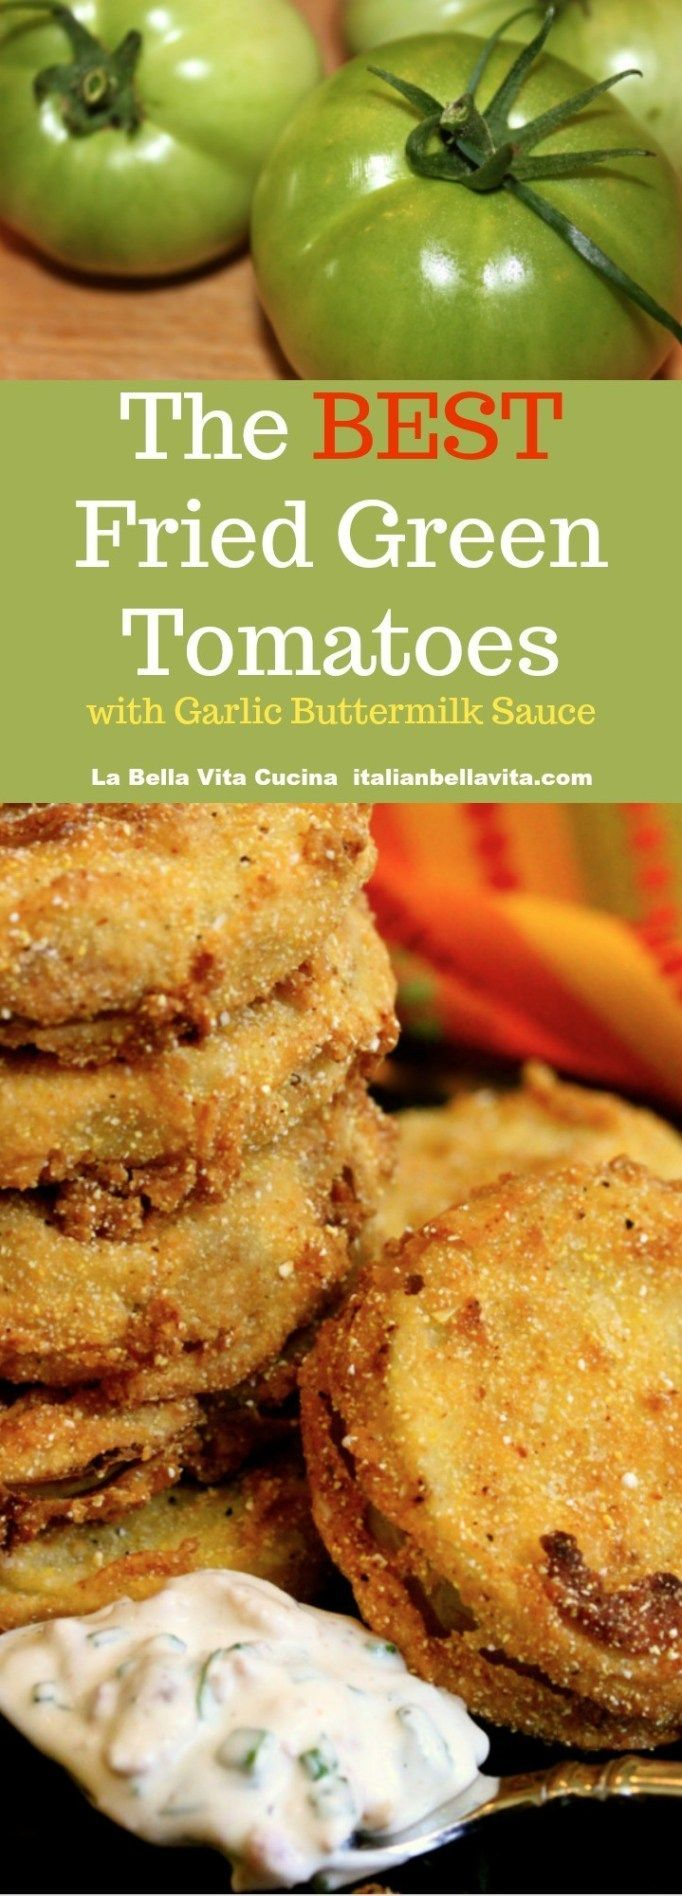 The BEST Fried Green Tomatoes with GARLIC and Bacon Buttermilk Sauce!   La Bella Vita Cucina The BE